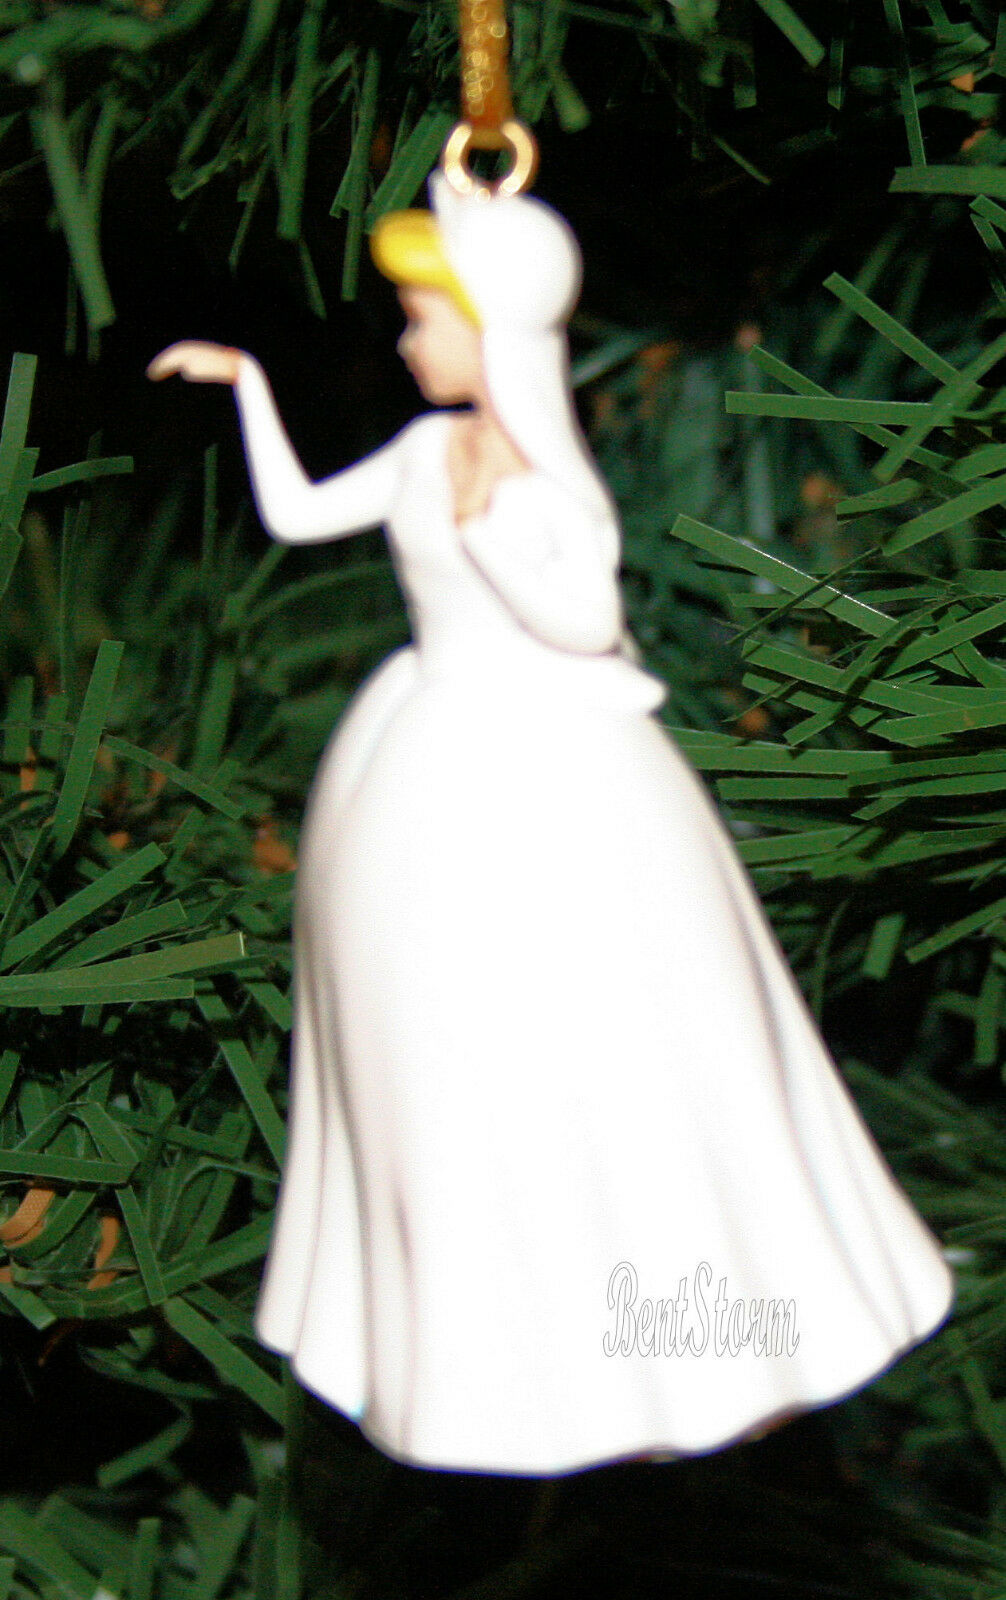 Disney Princess Cinderella WHITE WEDDING DRESS Holiday Christmas Ornament PVC